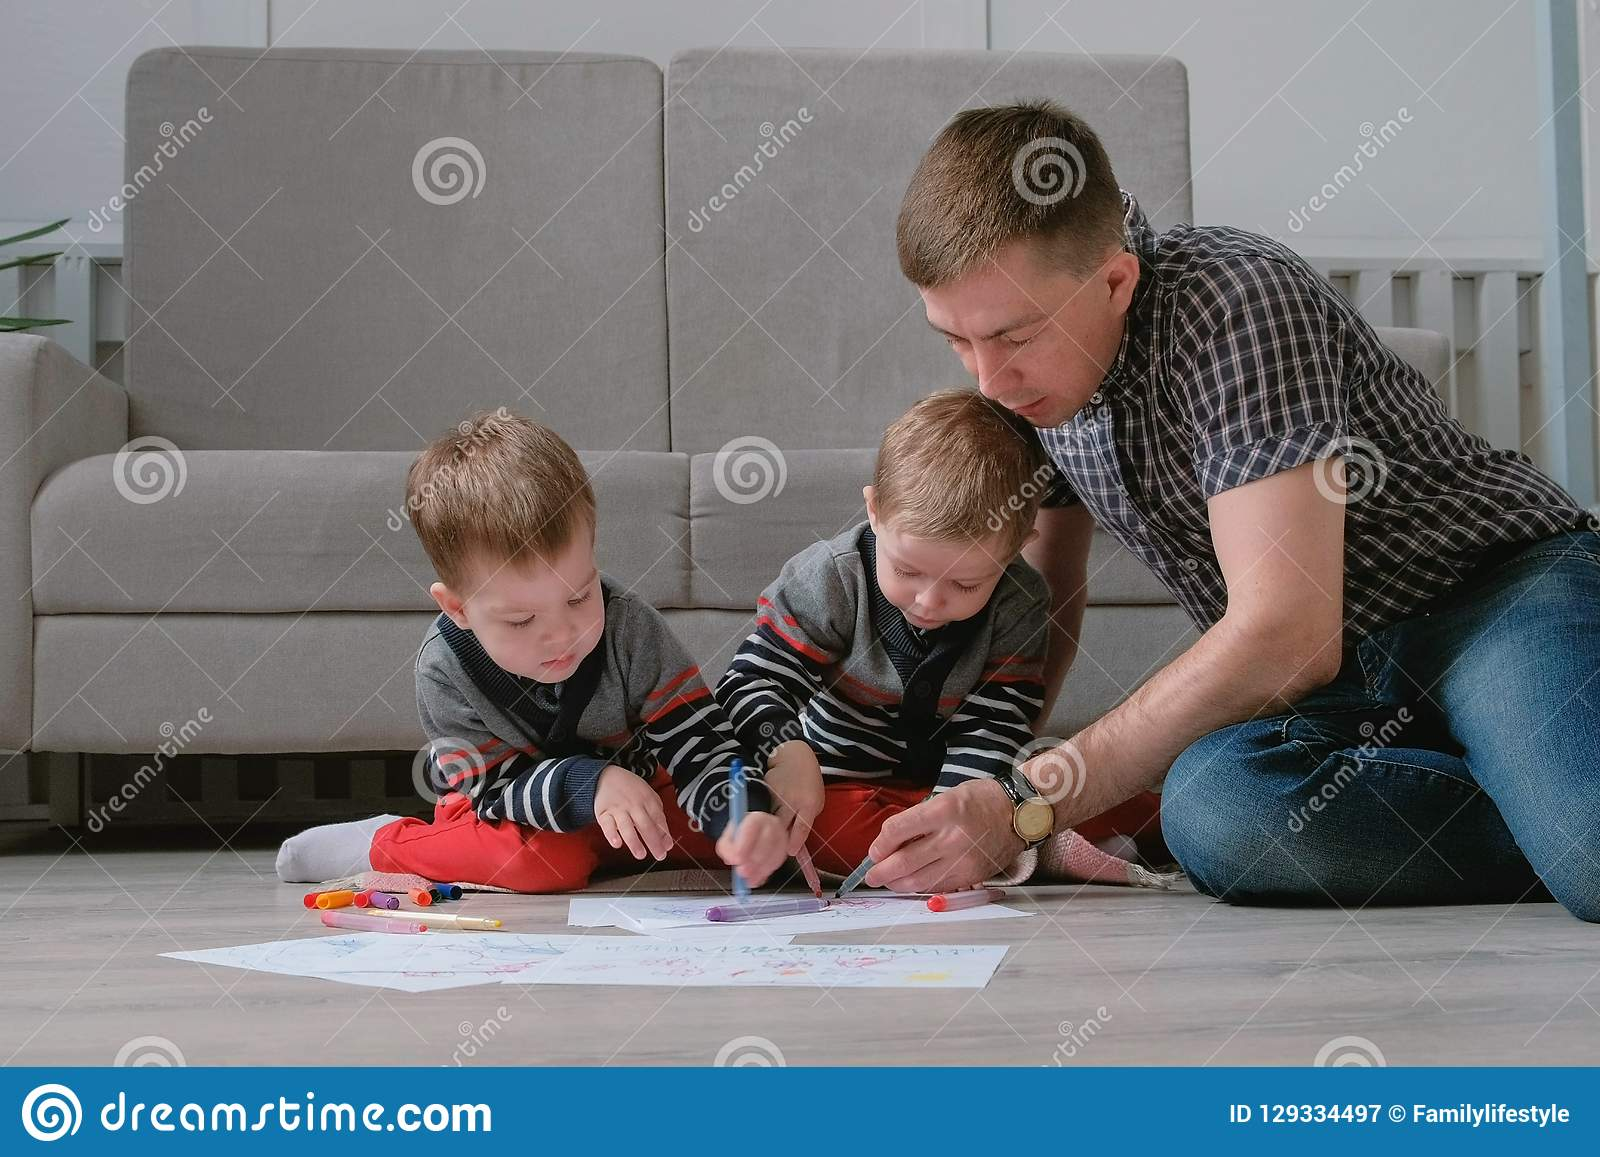 Family dad and two twin brothers draw together markers and felt pens sitting on the floor.